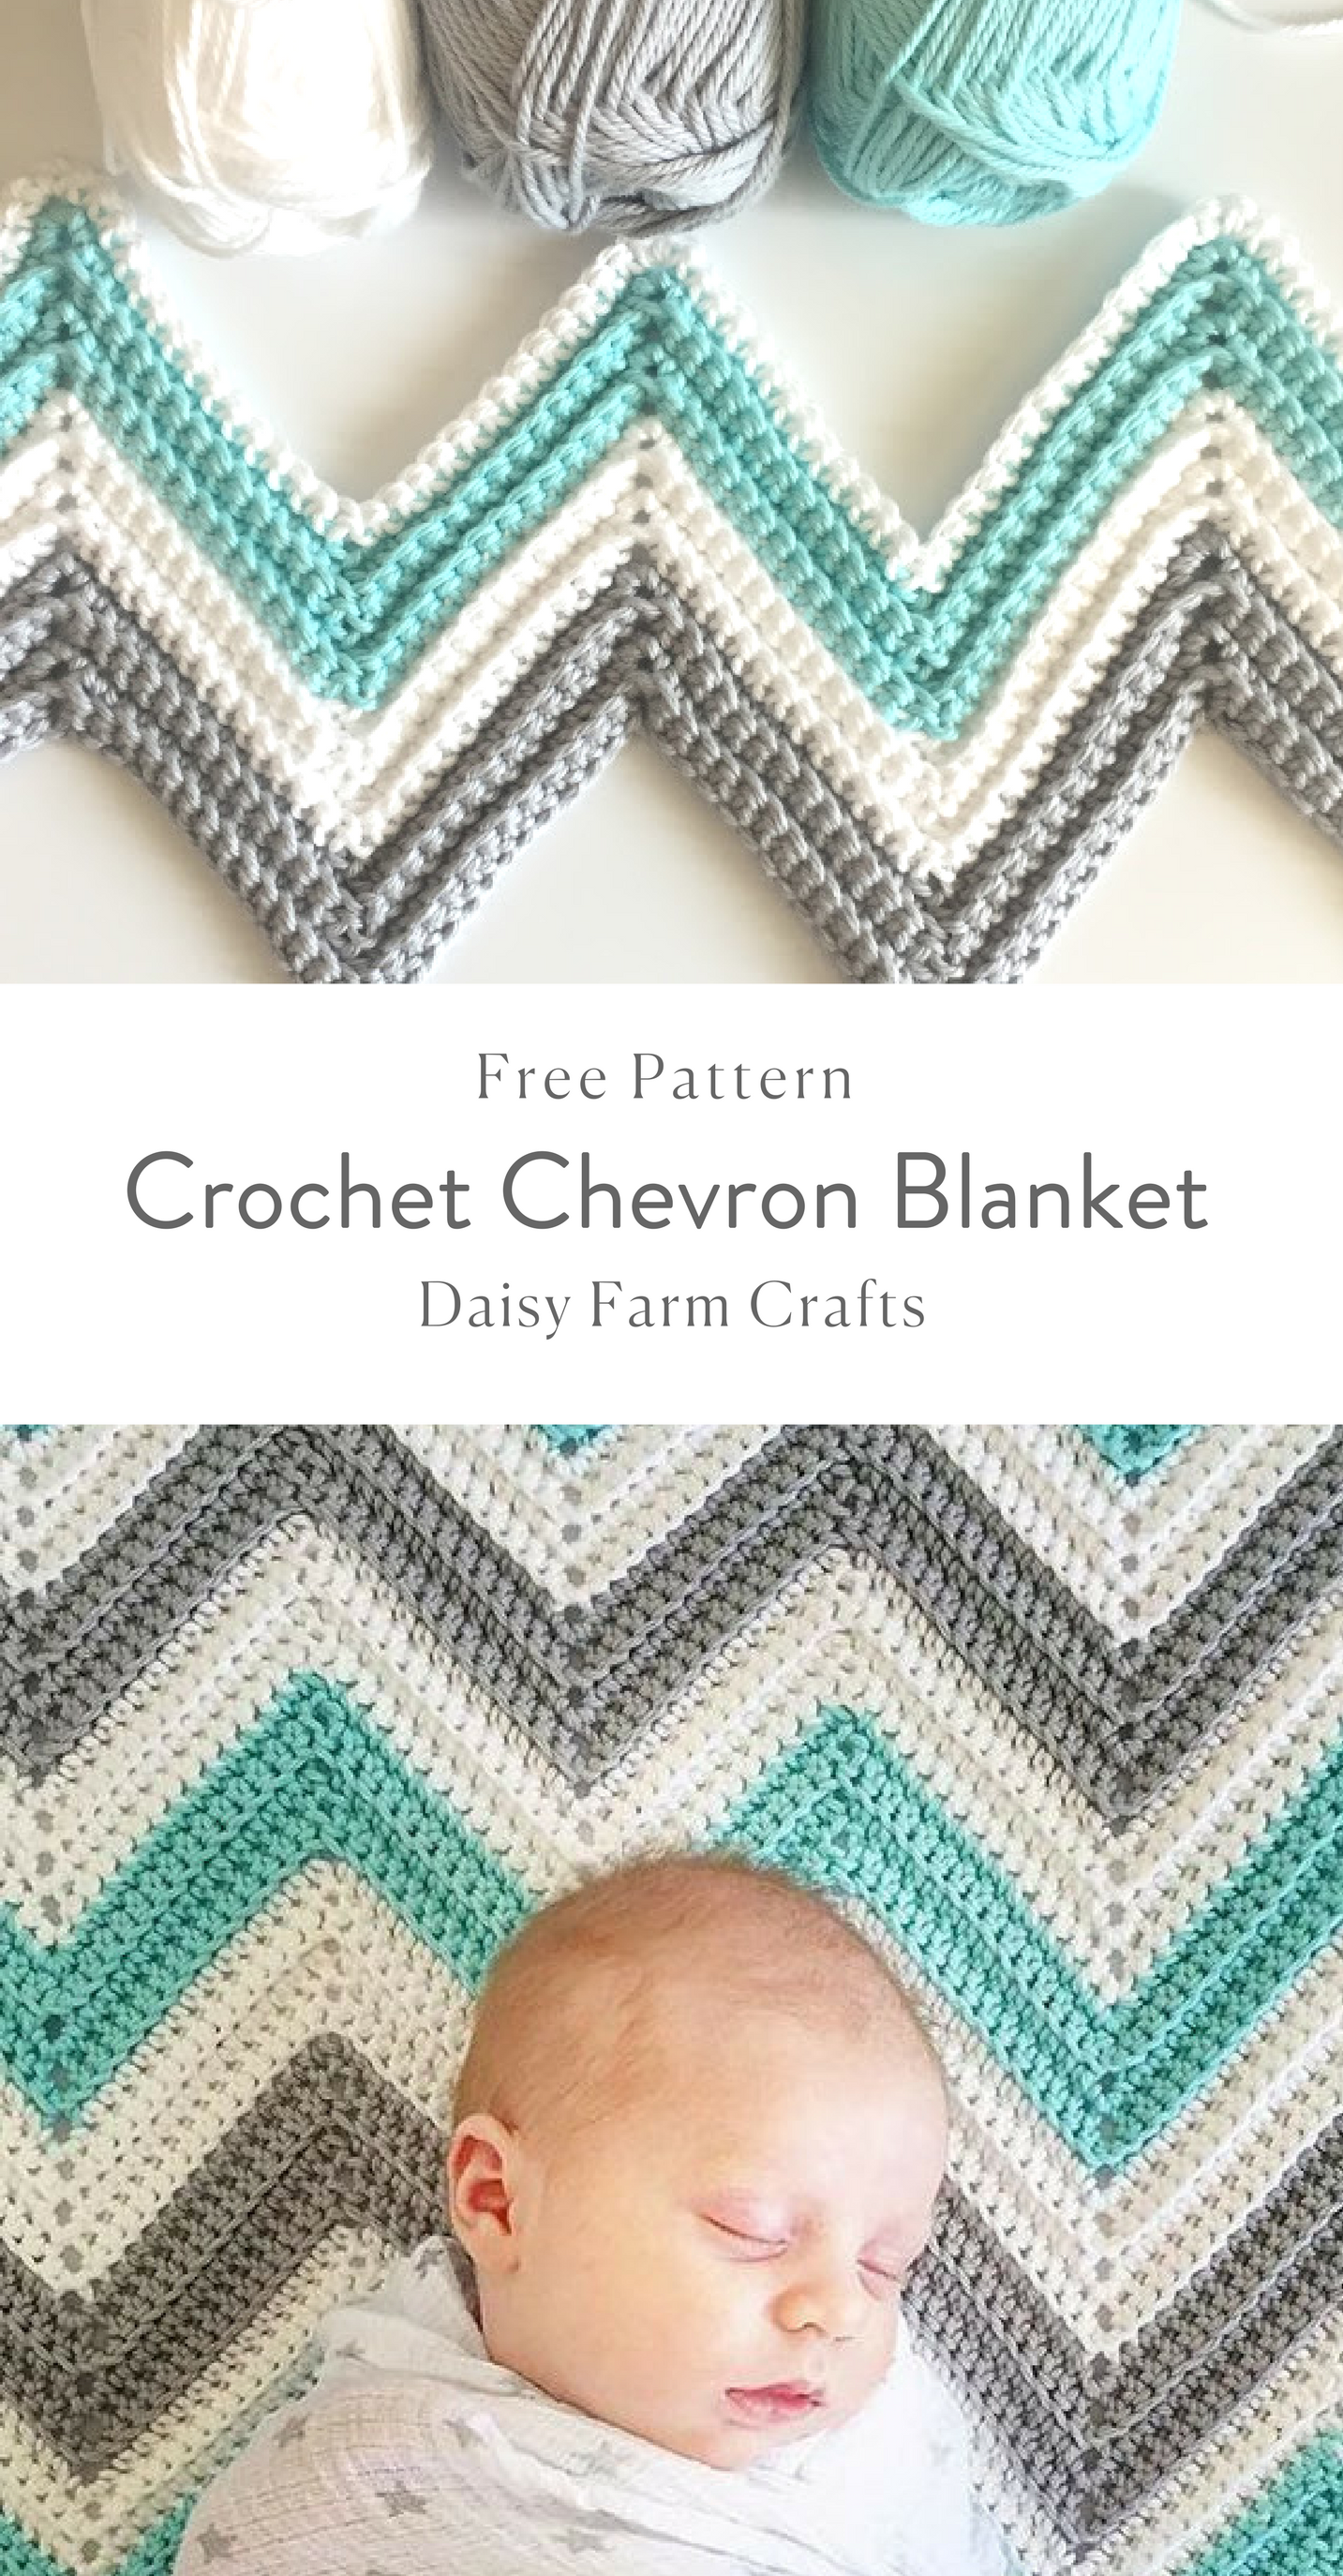 Free Pattern - Crochet Chevron Blanket | Daisy Farm Crafts ...